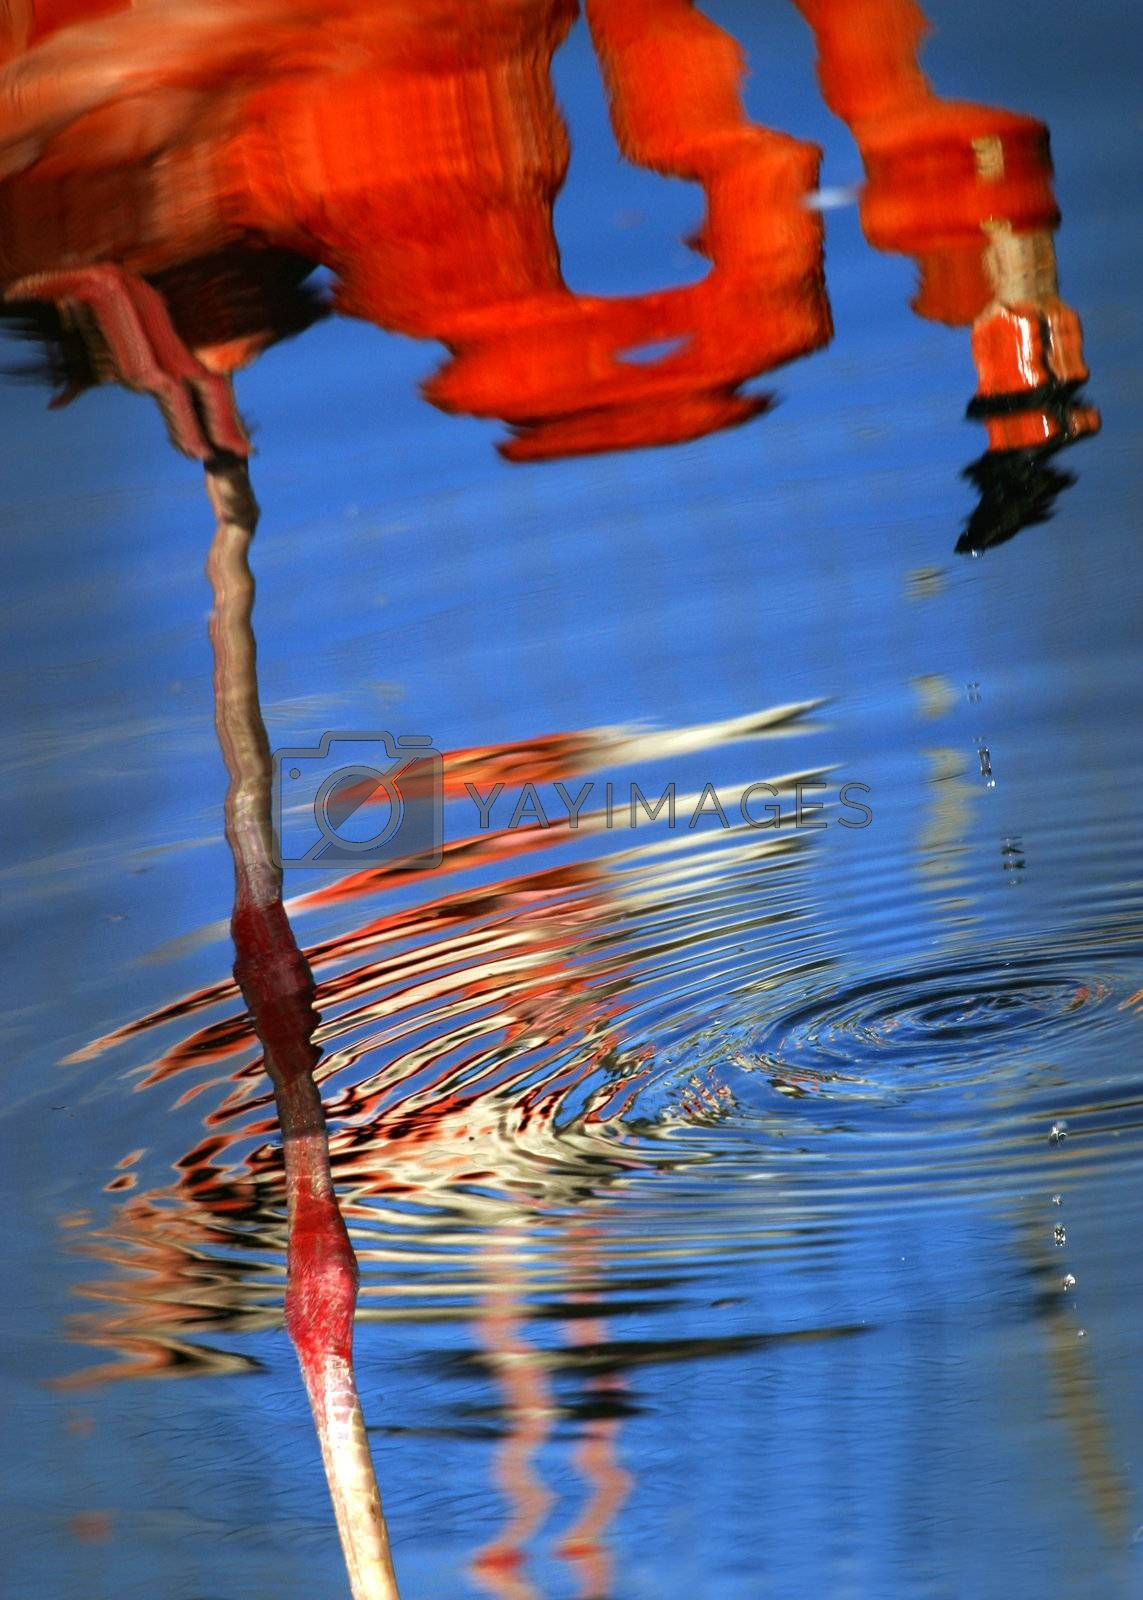 Reflection of a pink flamingo in water